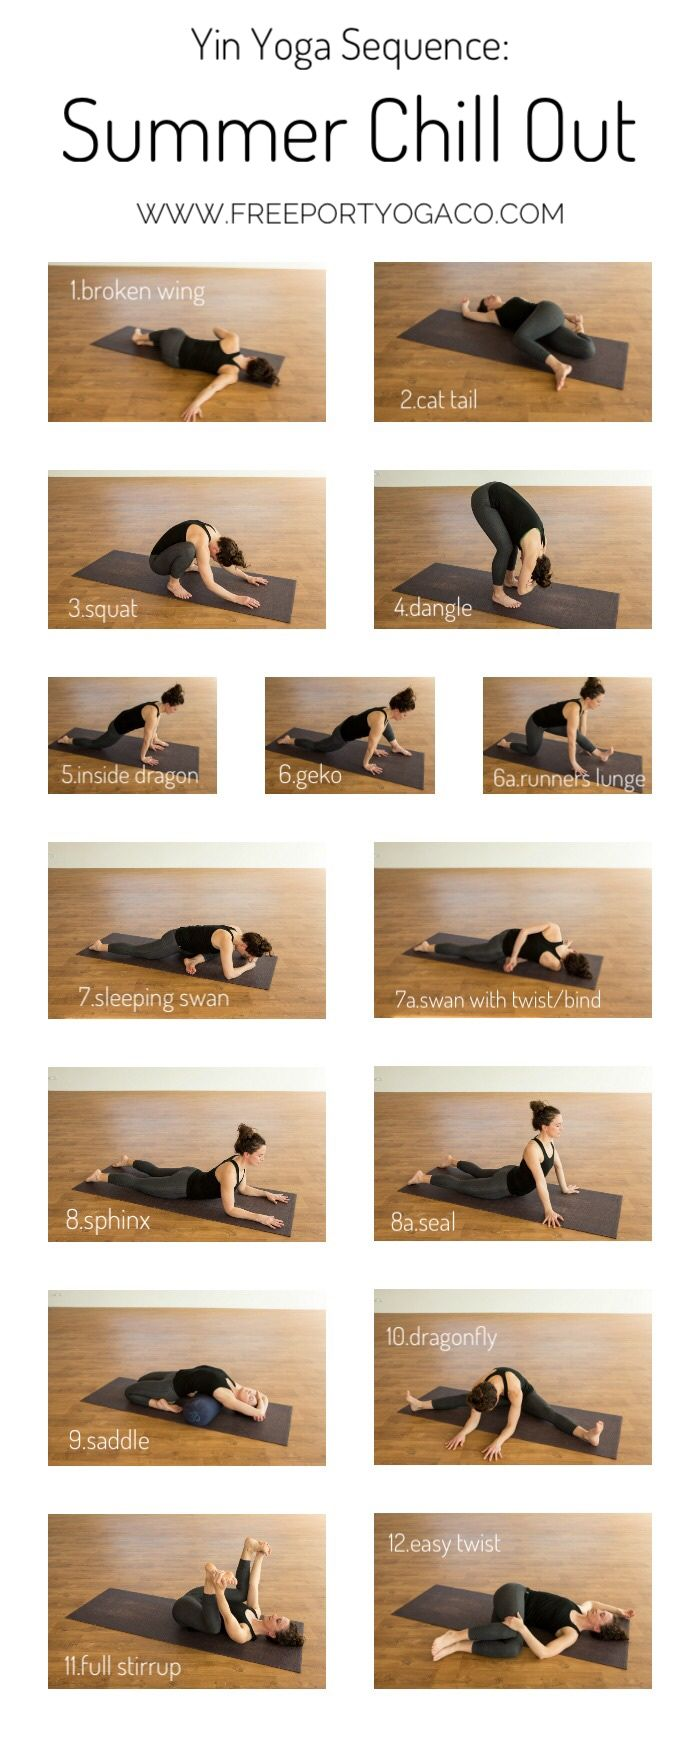 Yin Yoga Sequence: Summer Chill Out Summer is upon us, and with it comes longer days, warmer temperatures, and a jam packed calendar. According to Taoist philosophy, Summer is a Yang time of year, and our activities and physical vitality certainly reflect this as we soak Read More